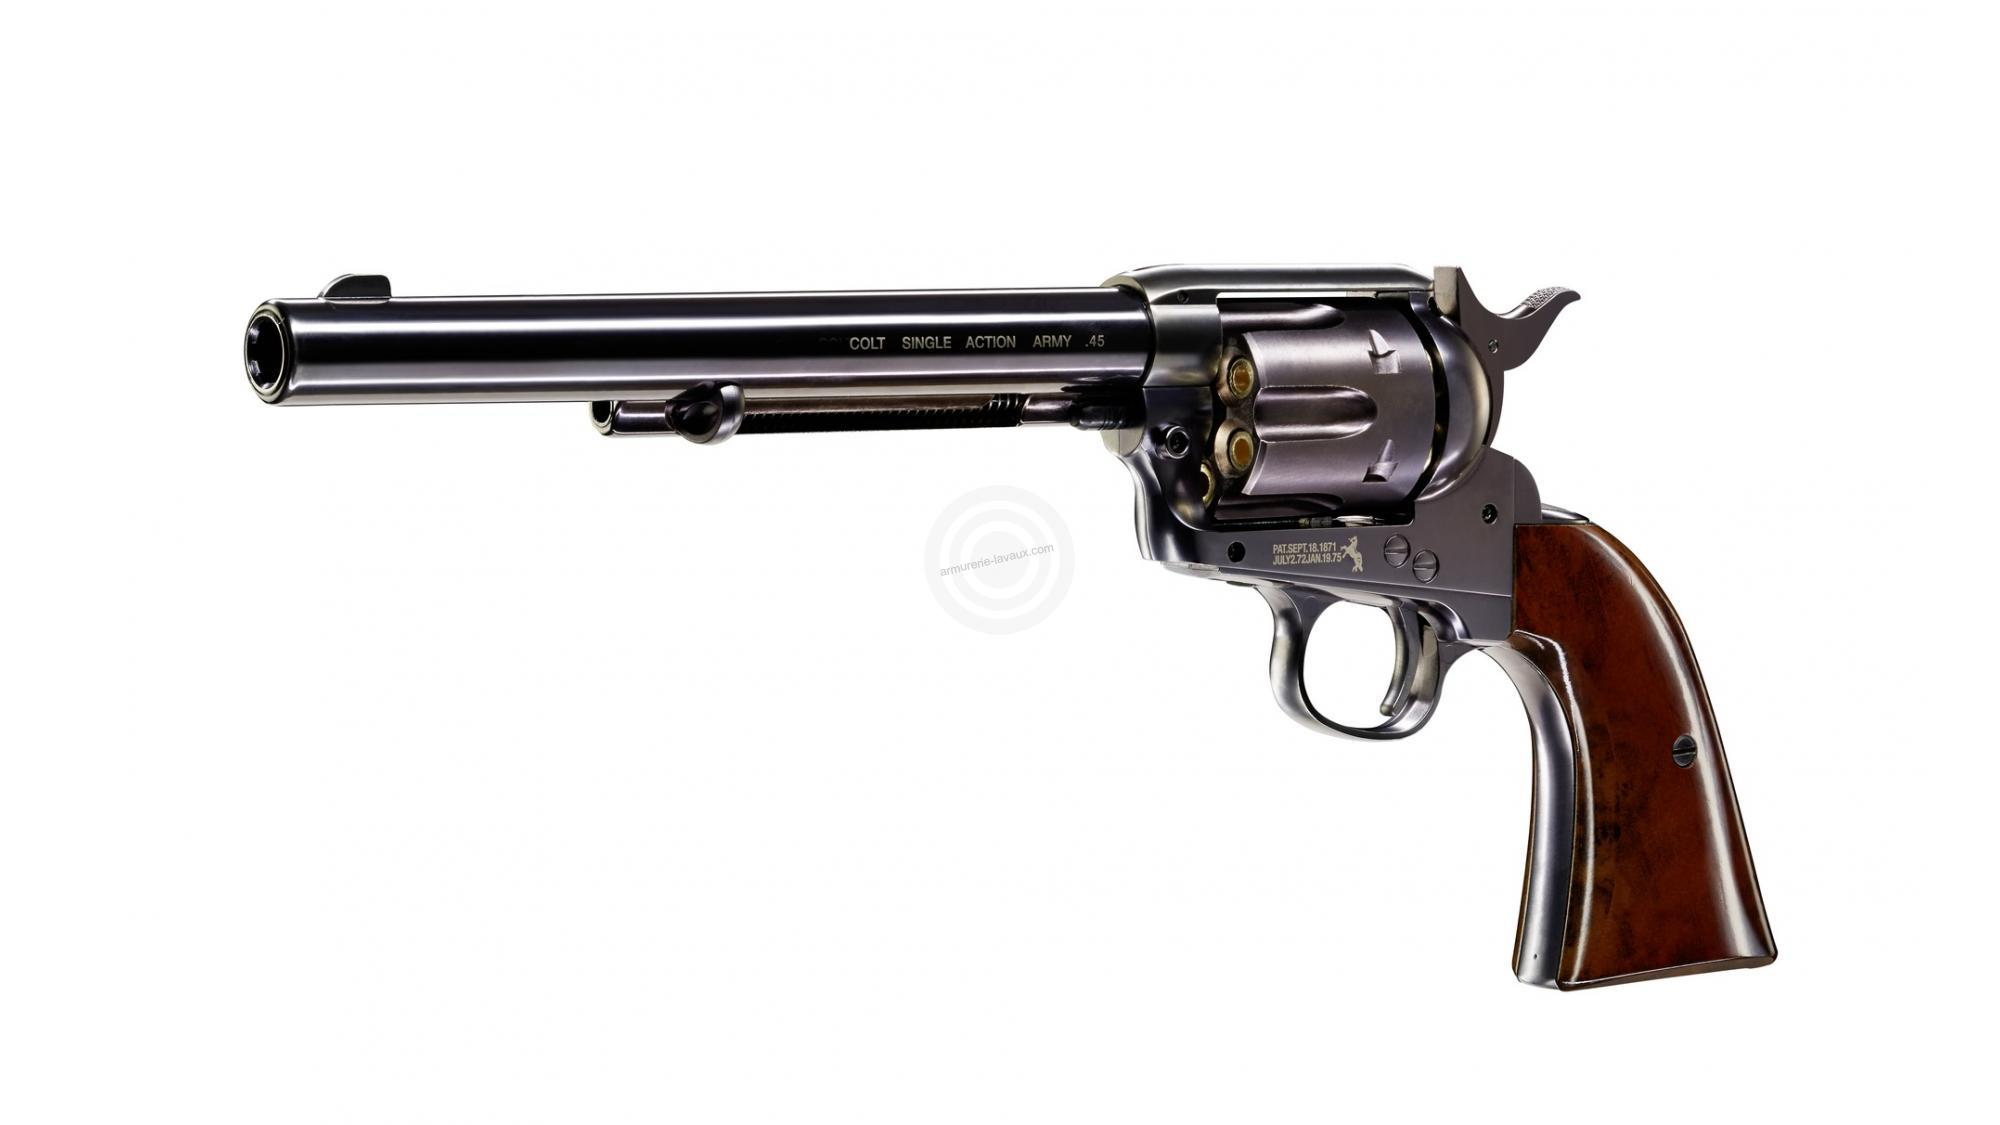 Revolver COLT Peacemaker SAA.45 7.5